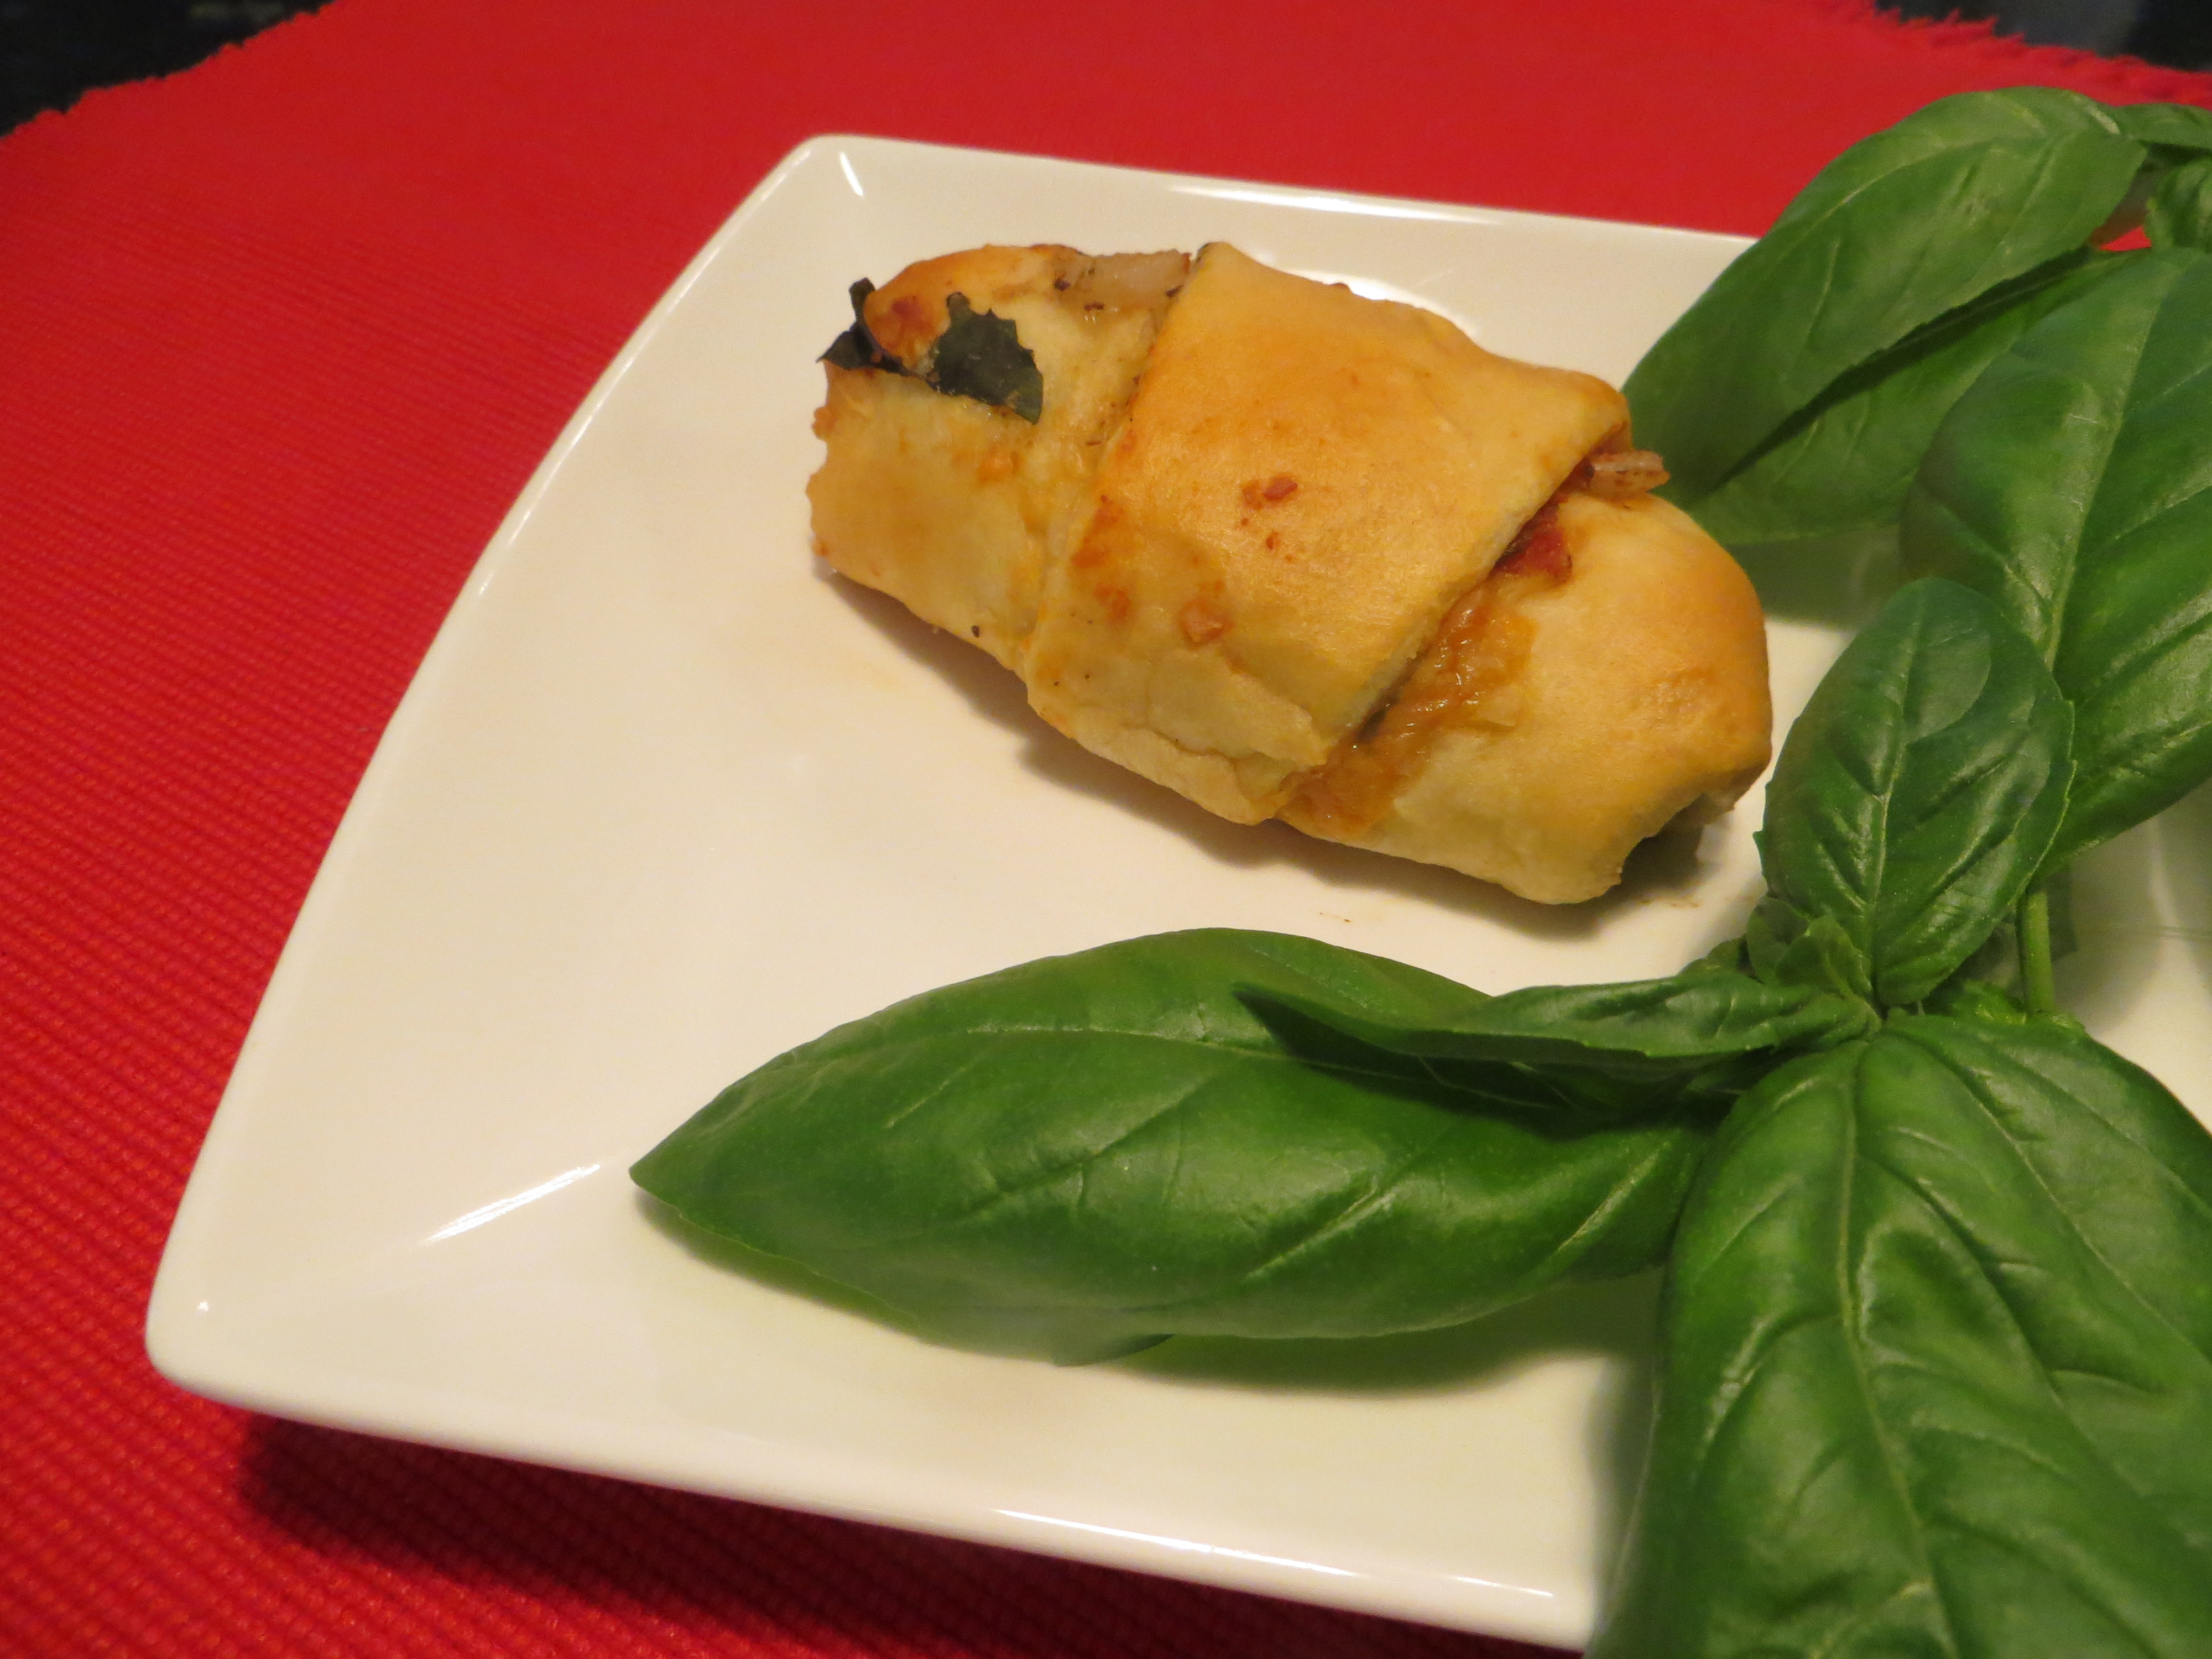 Easy to Make Finger Foods http://www.blimpygirl.com/all-recipes/stuffed-basil-tenderloin-croissant-appetizer